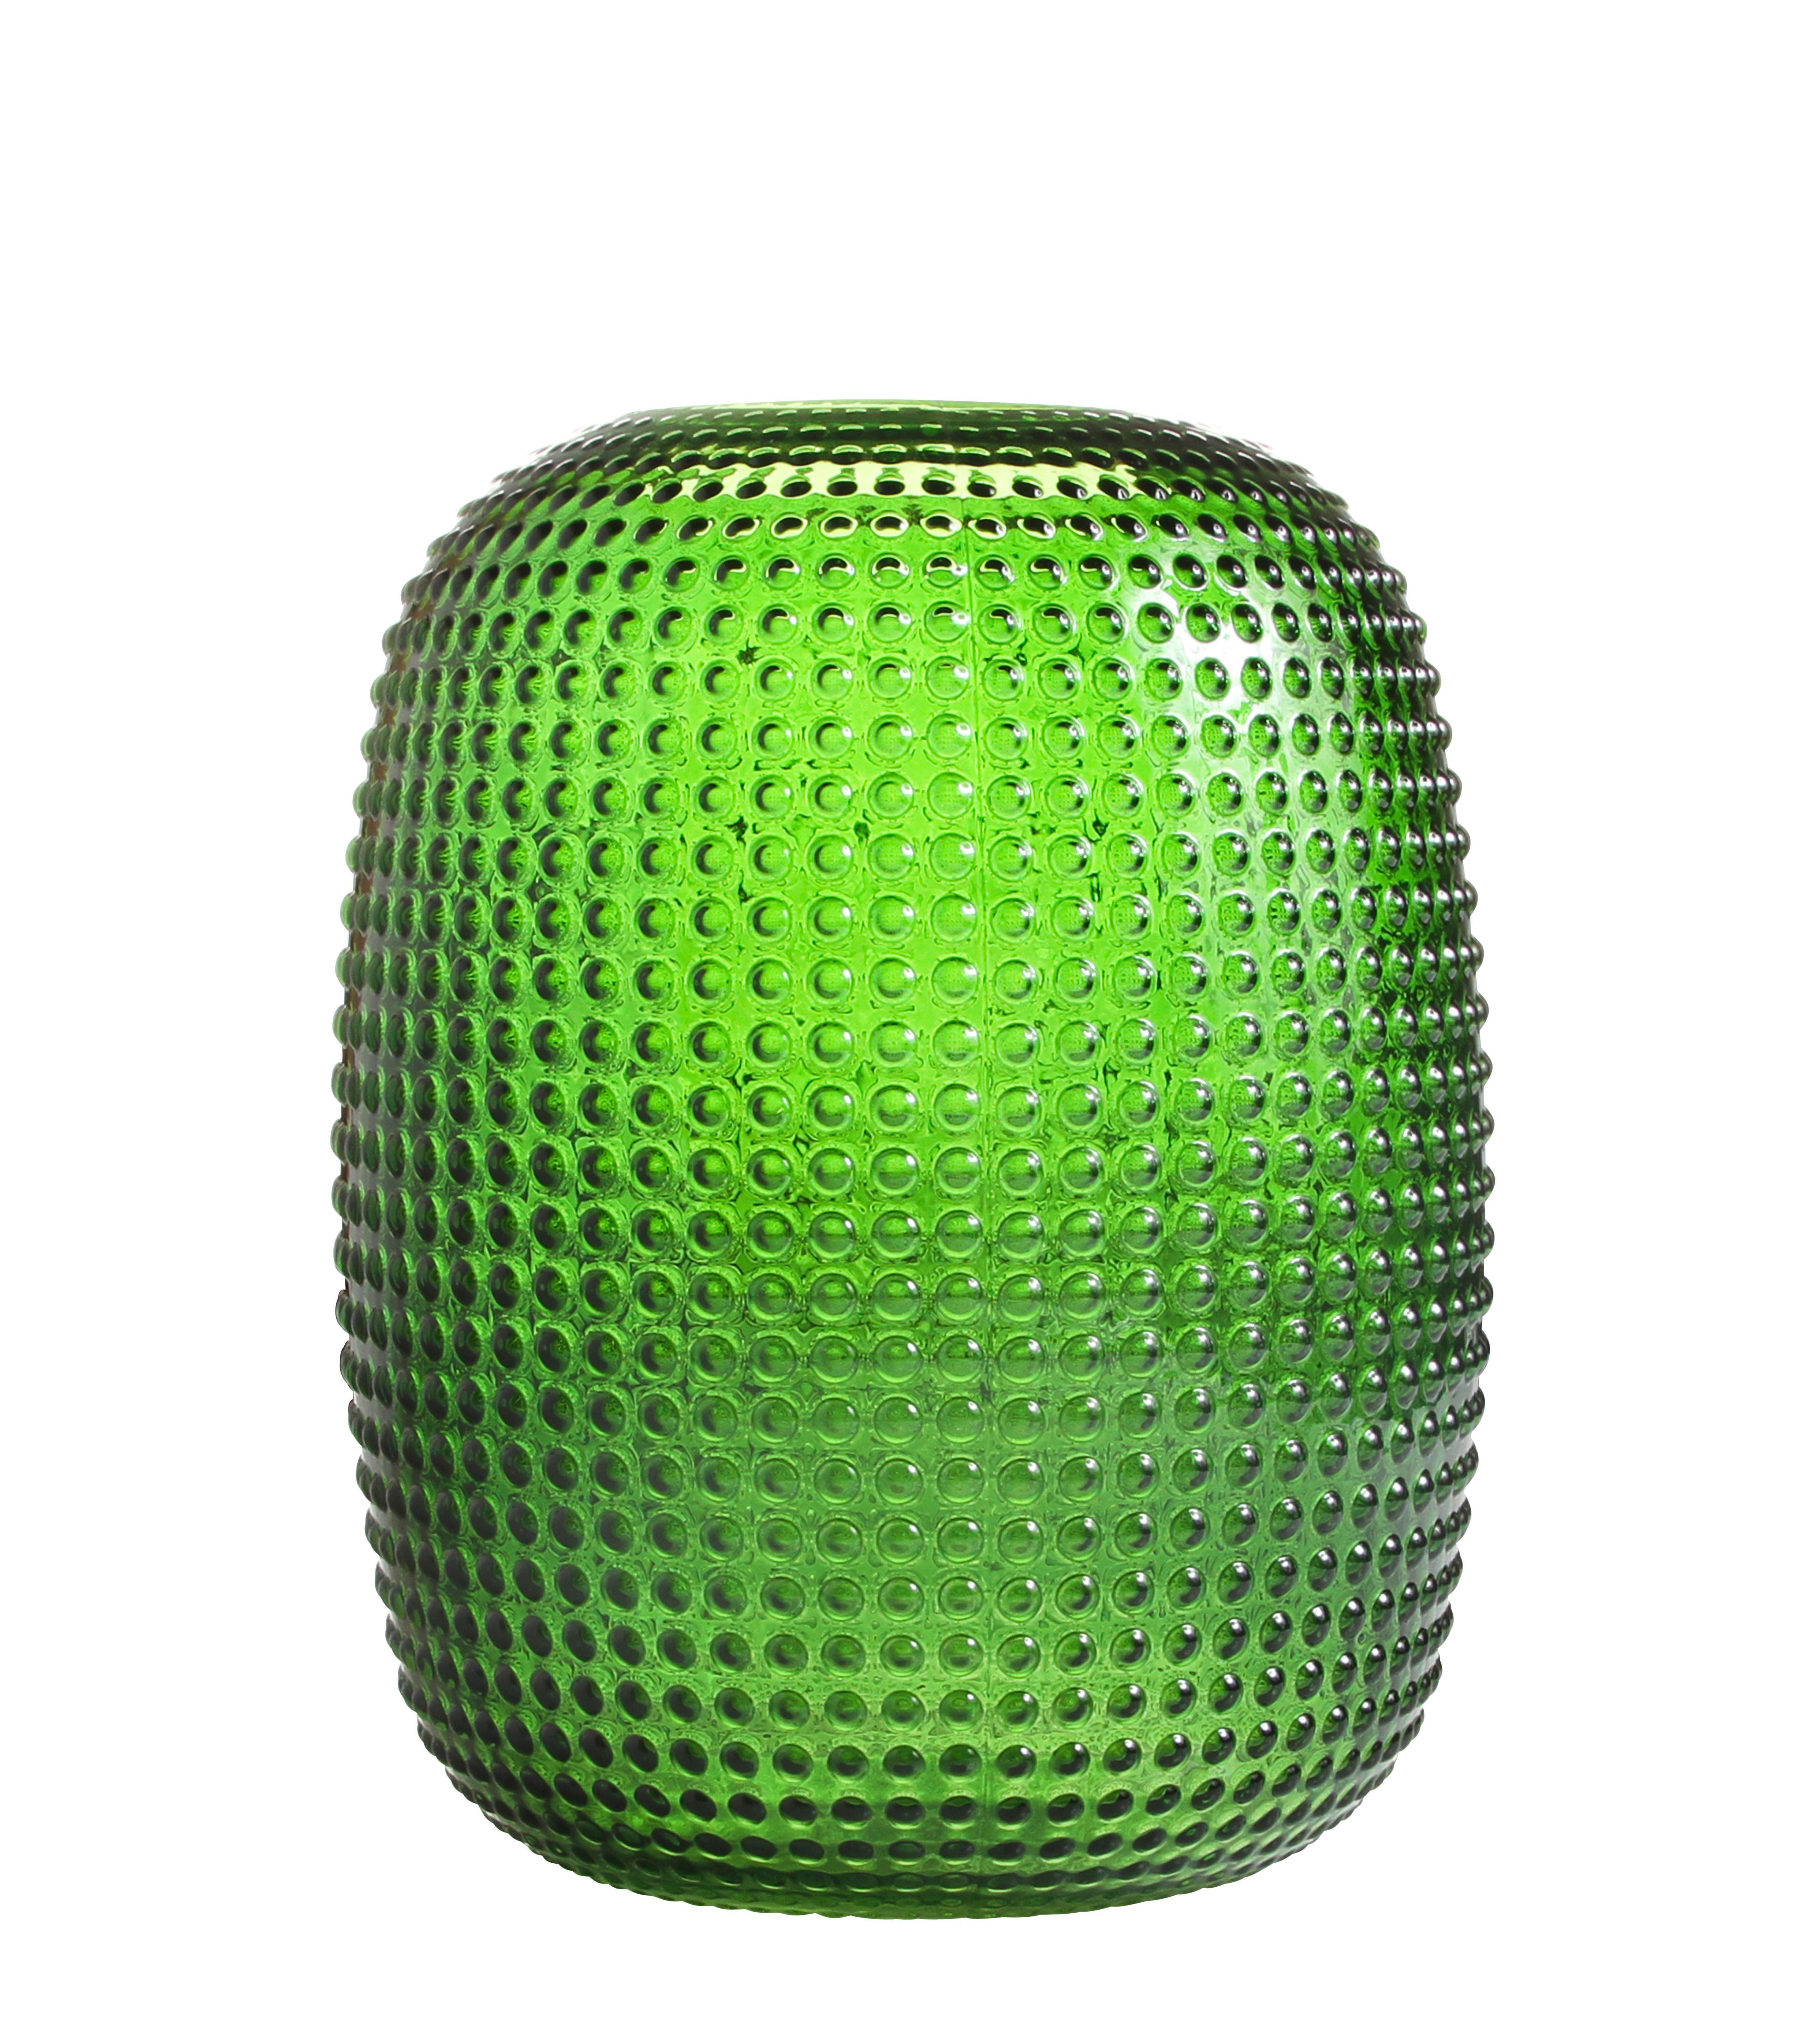 Decoration - Vases - Dotted Small Vase - Glass - H 26,5 cm by & klevering - Green - Glass